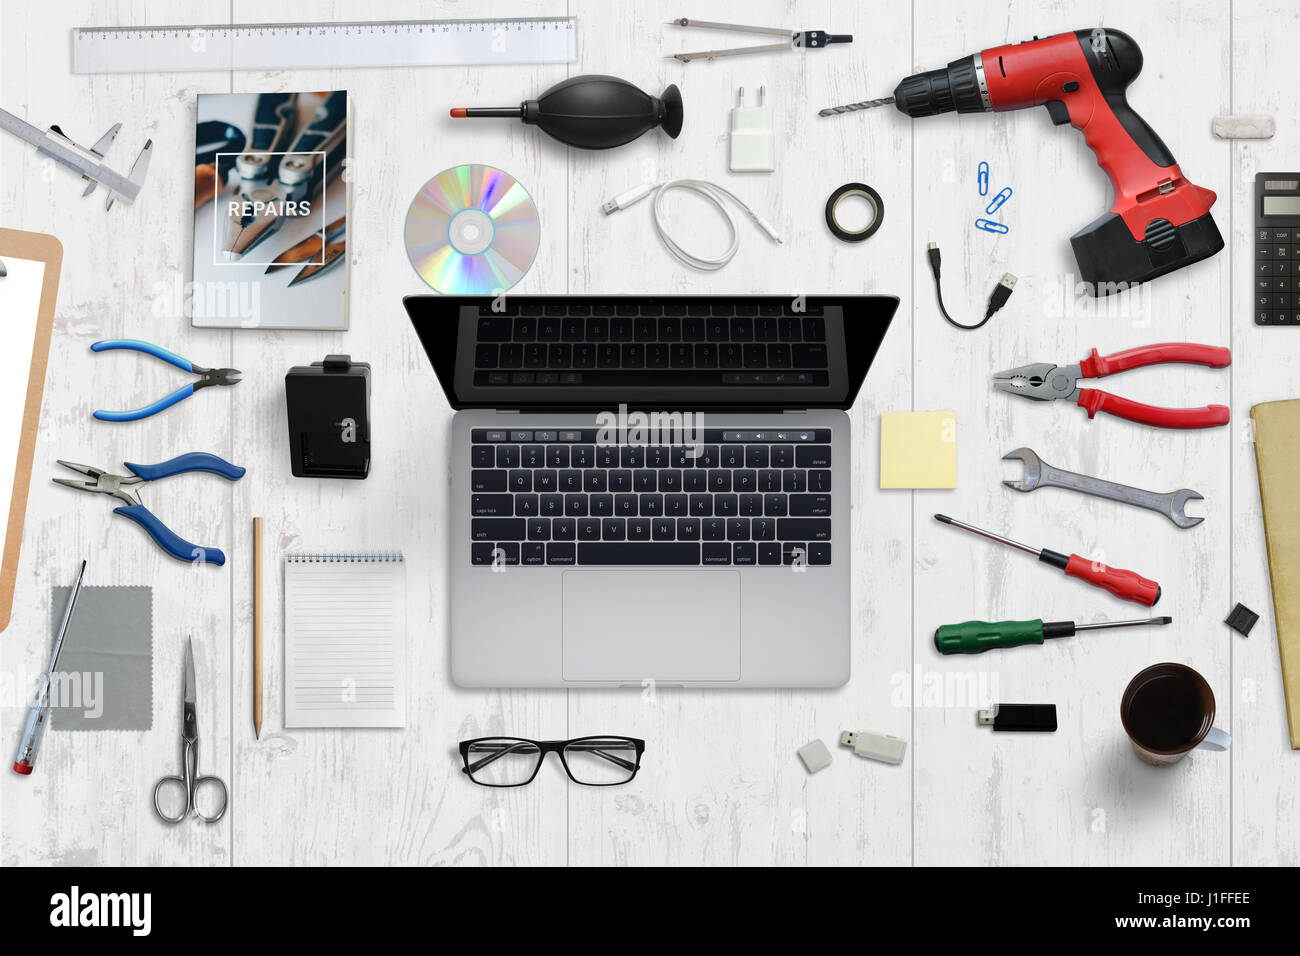 Computer hardware service desk. Laptop with blank screen surrounded with repair tools. Top view. - Stock Image